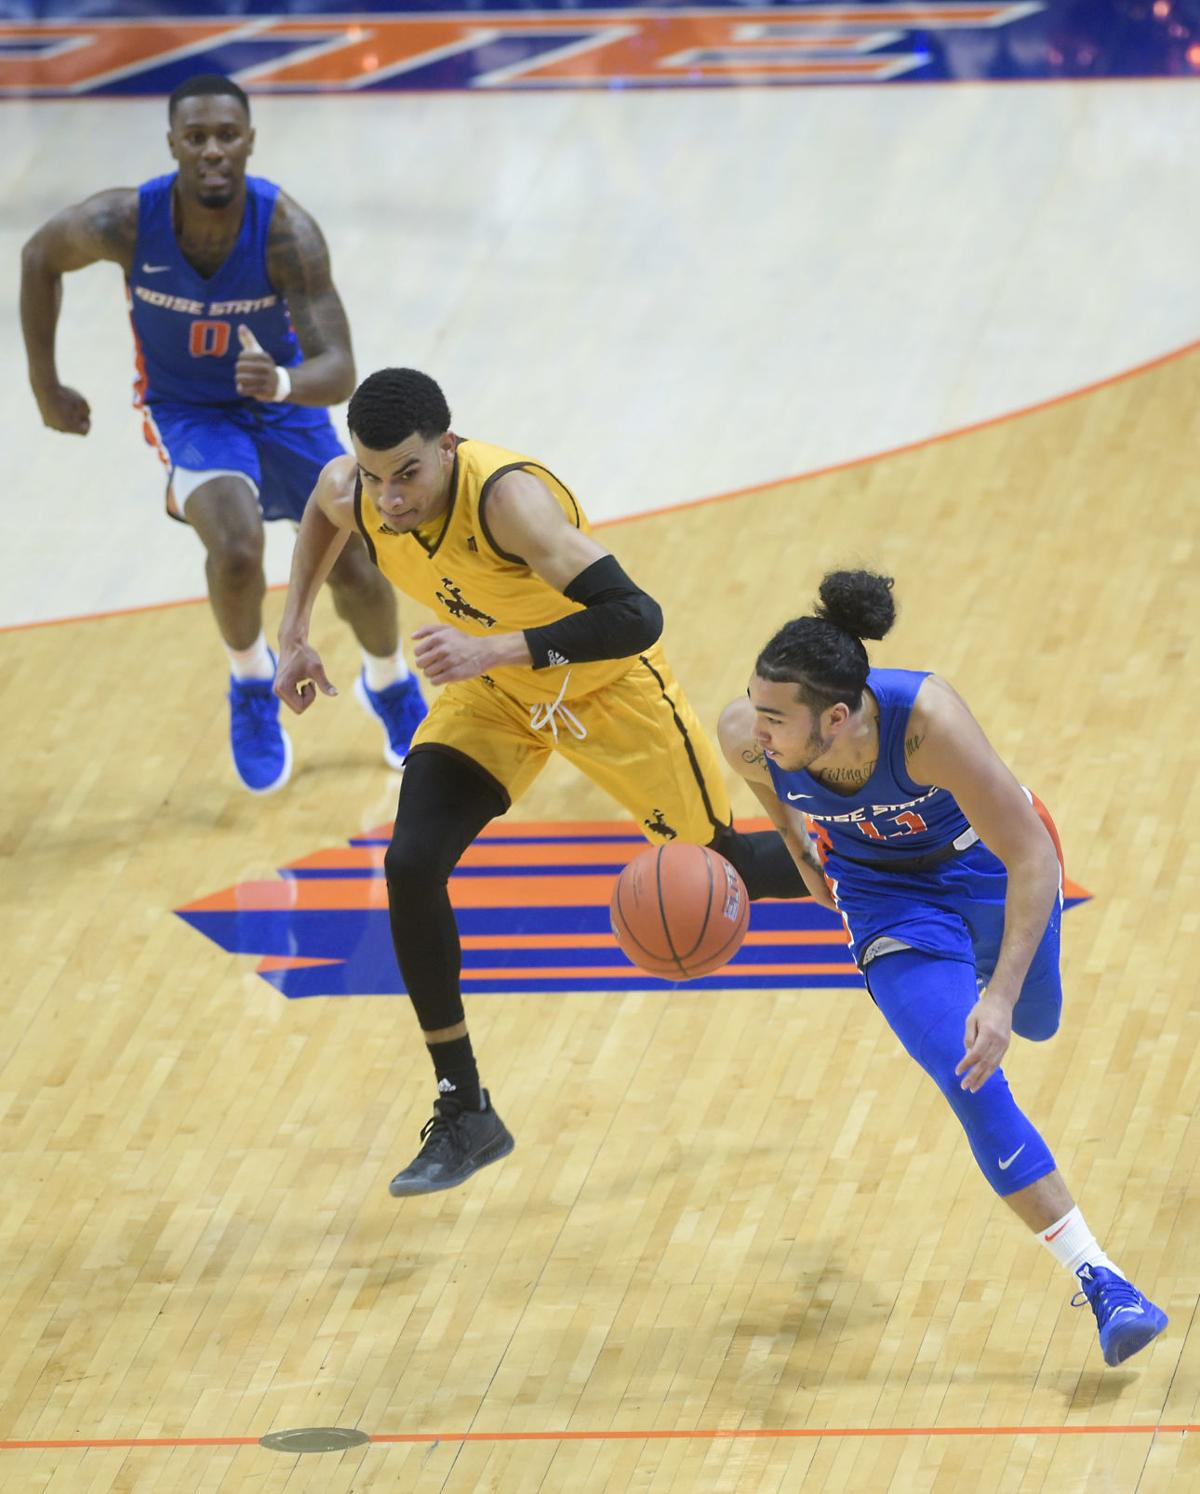 Boise State vs Wyoming Basketball